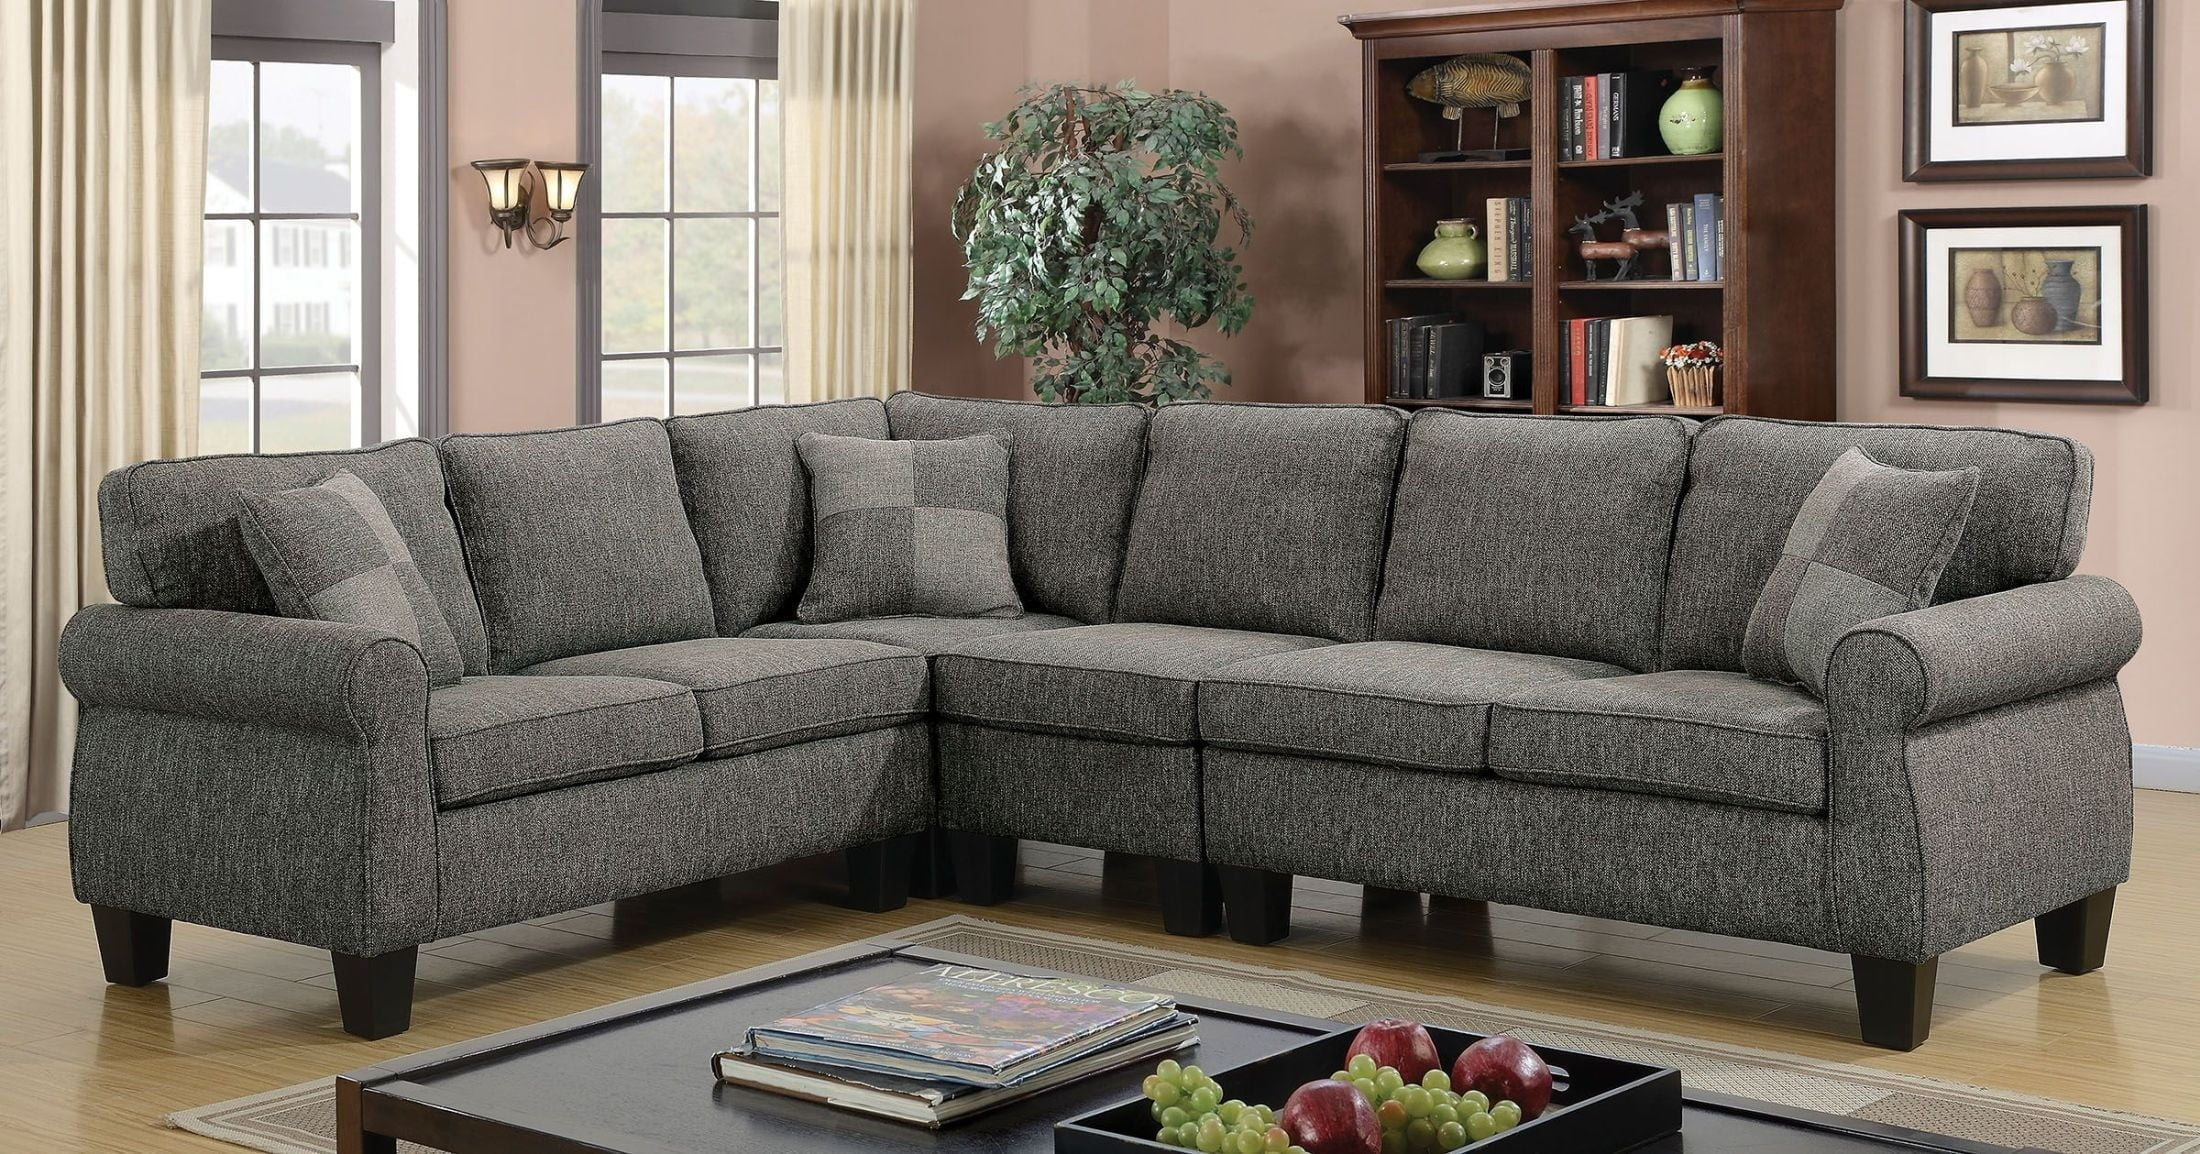 dark gray sectional sofa with collection also fabulous charcoal chaise lounge images design venetian rhian gray sectional from furniture of america 12312